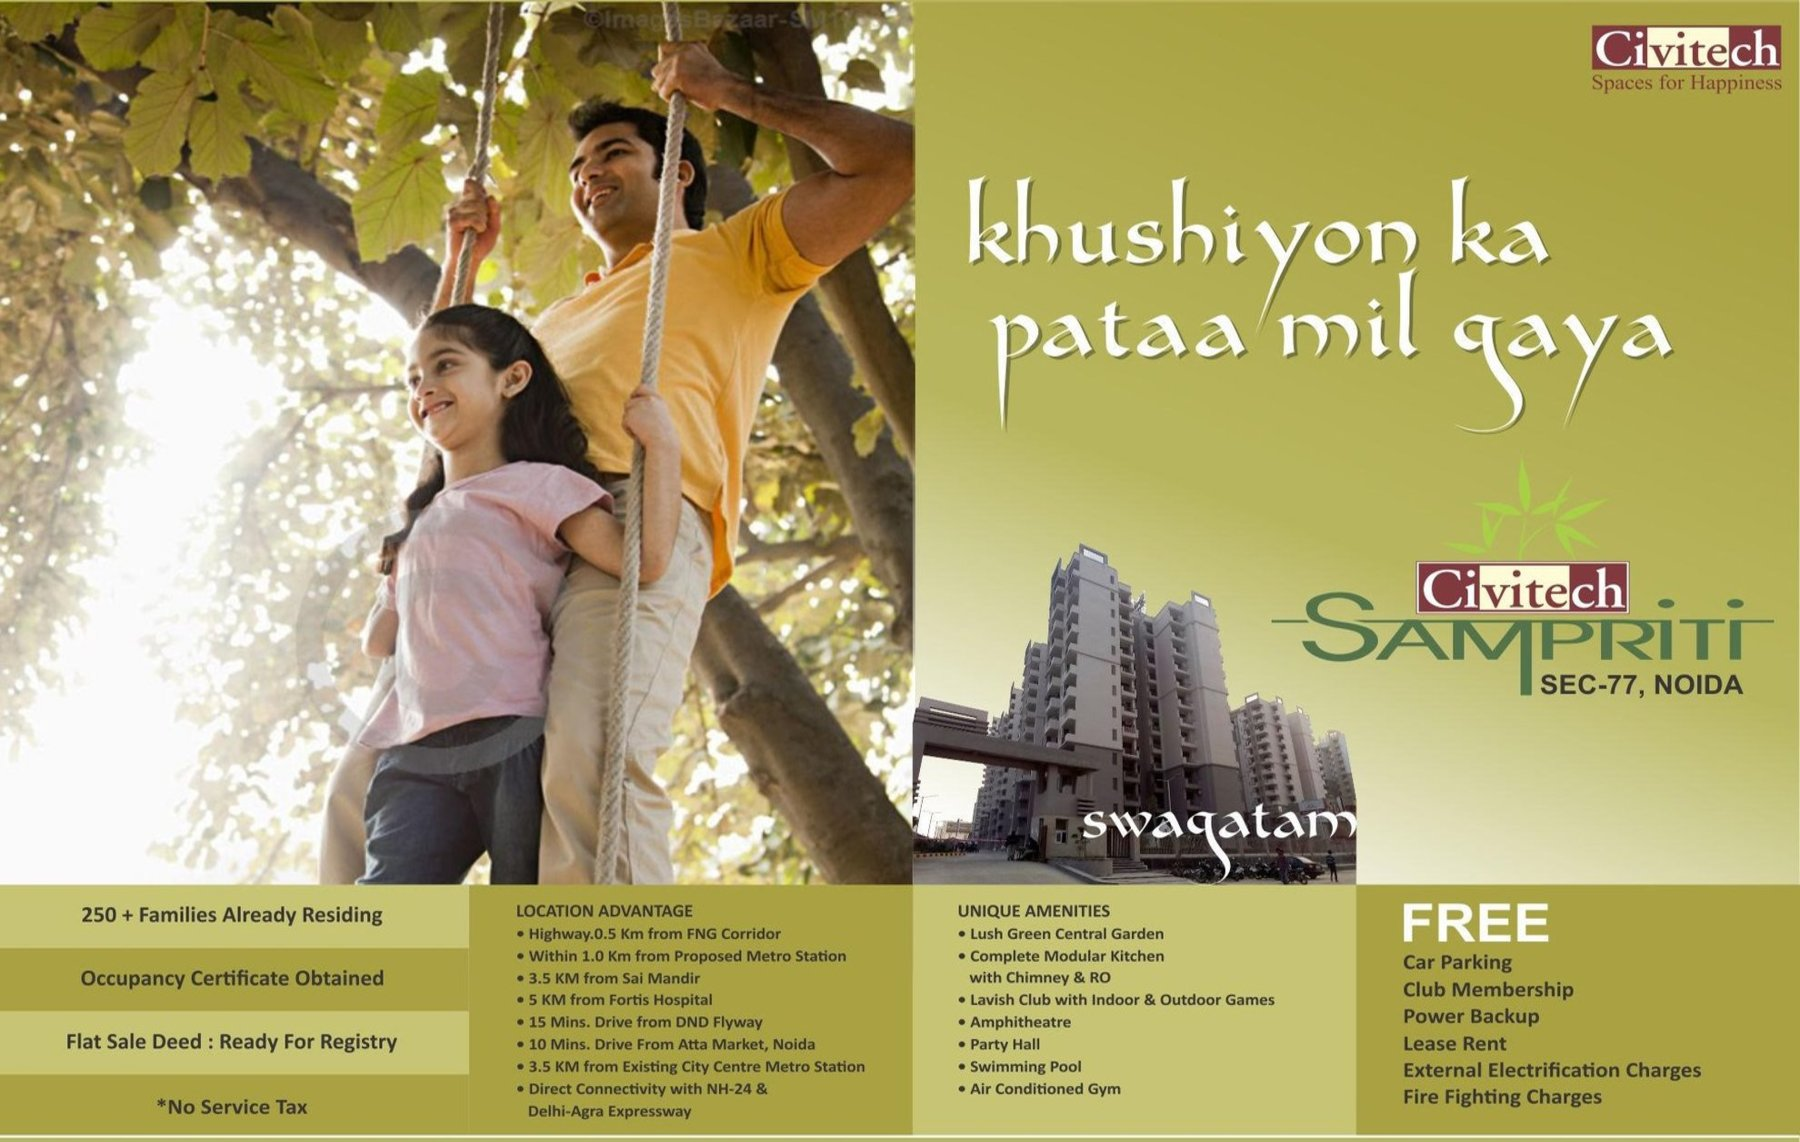 Civitech Sampriti Noida Sector-77